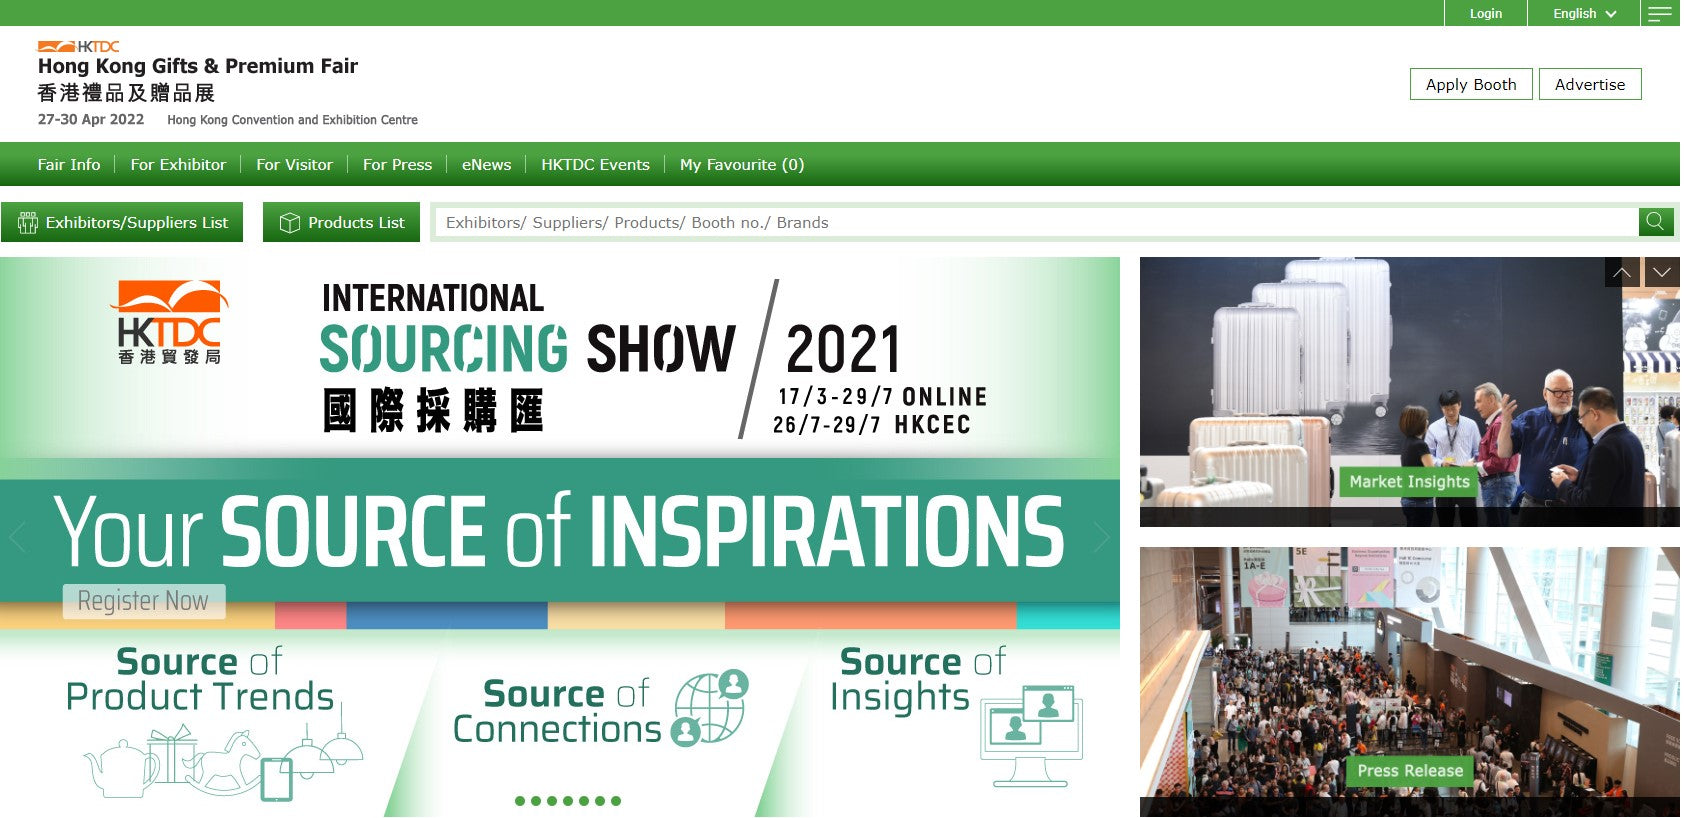 news-Lexuma-Agent-Product-Travel-Scratch-Maps-listed-on-the-Sourcing-on-hktdc-com-event-page-Hong-Kong-Gifts-and-Premium-Fair-exhibition